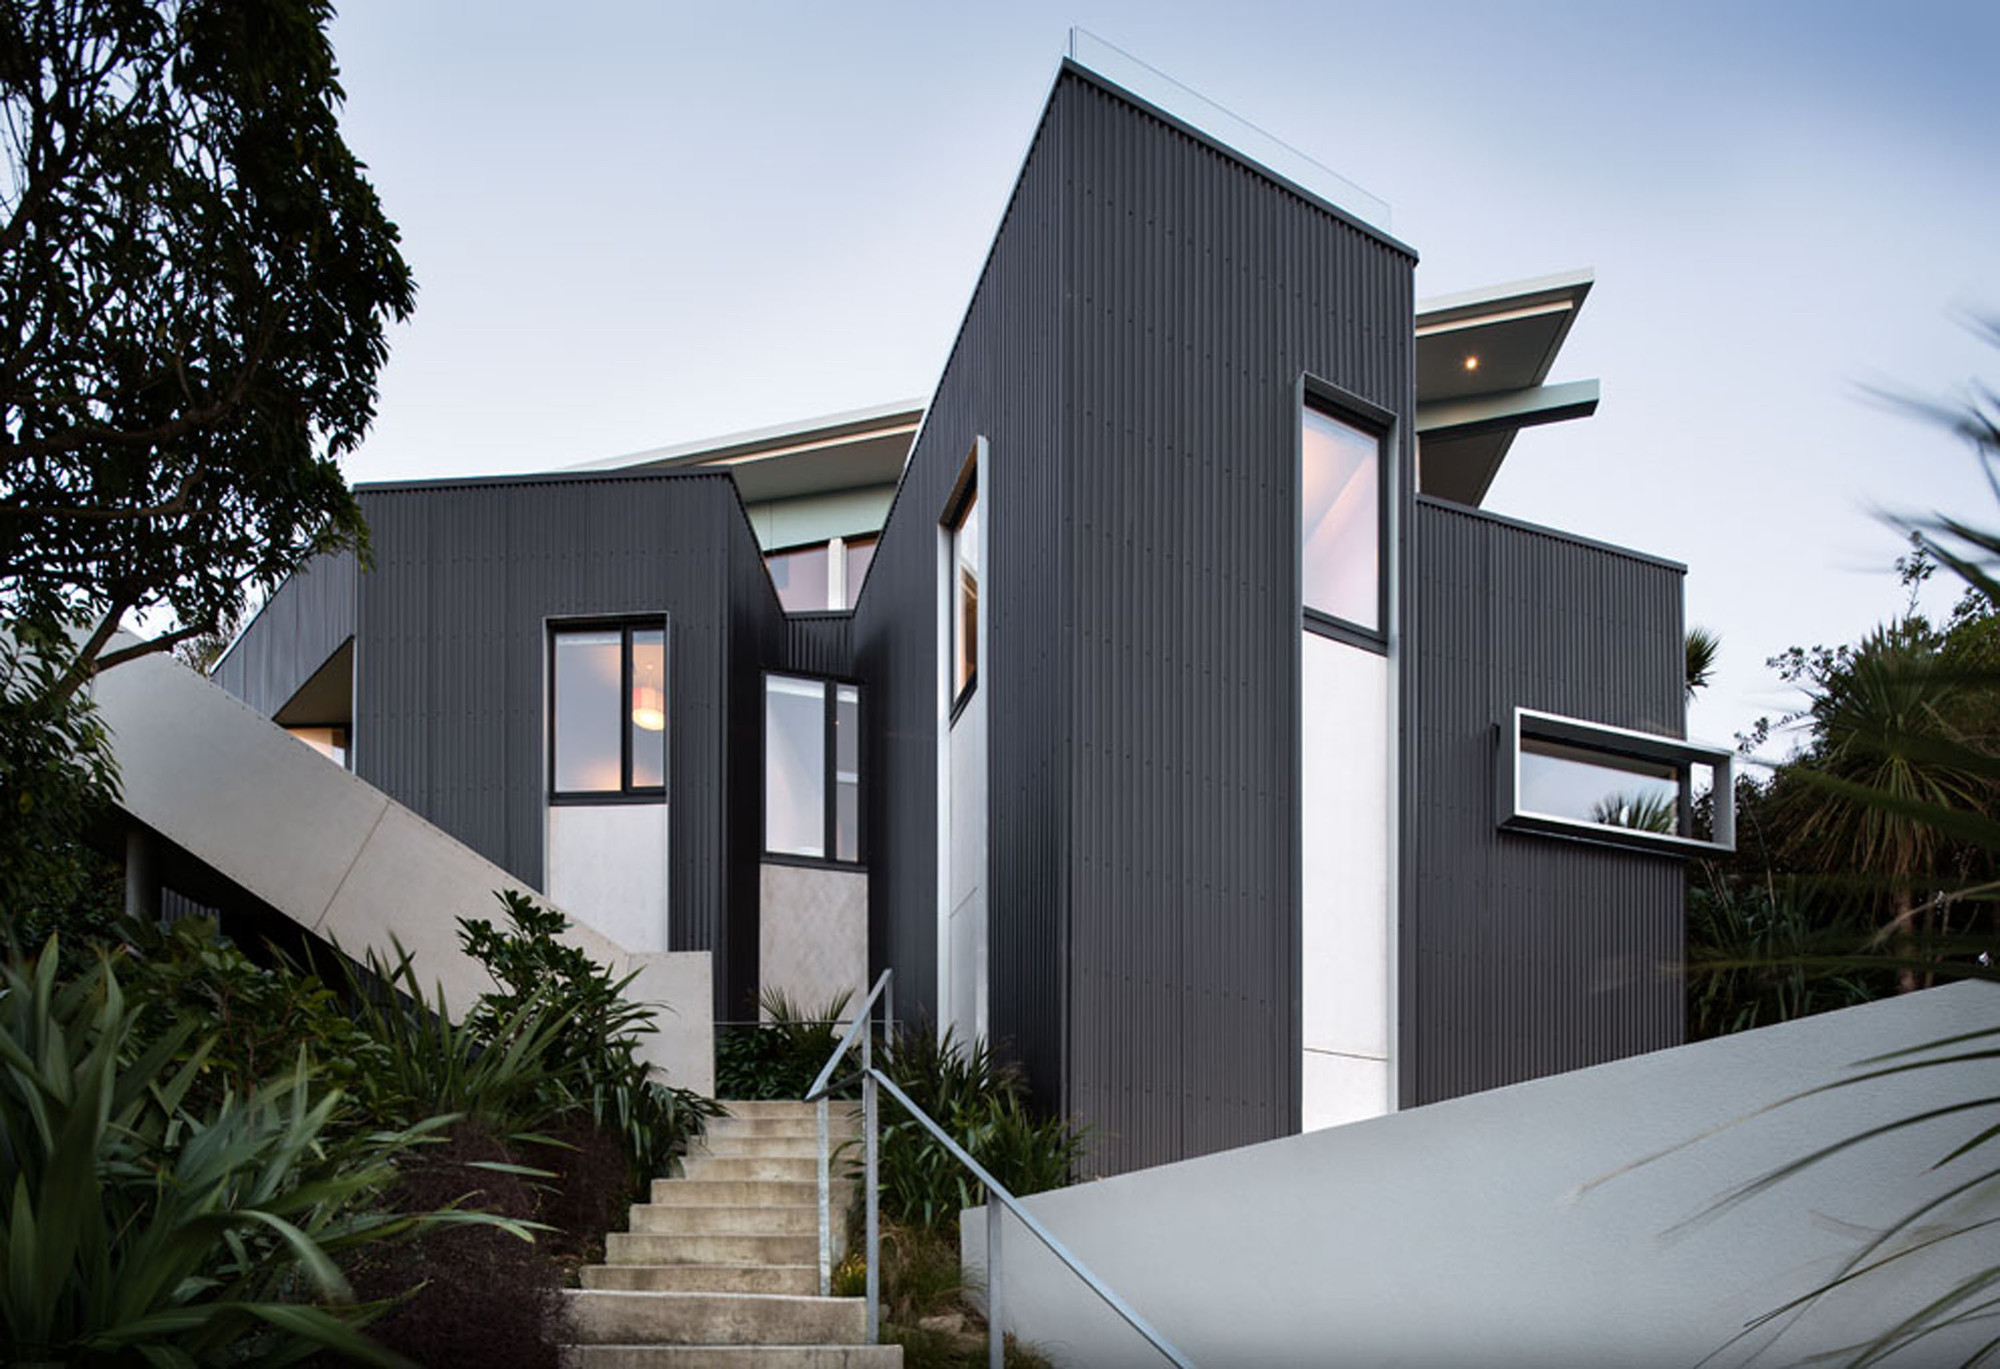 Seatoun Heights House / Parsonson Architects, © Paul McCredie